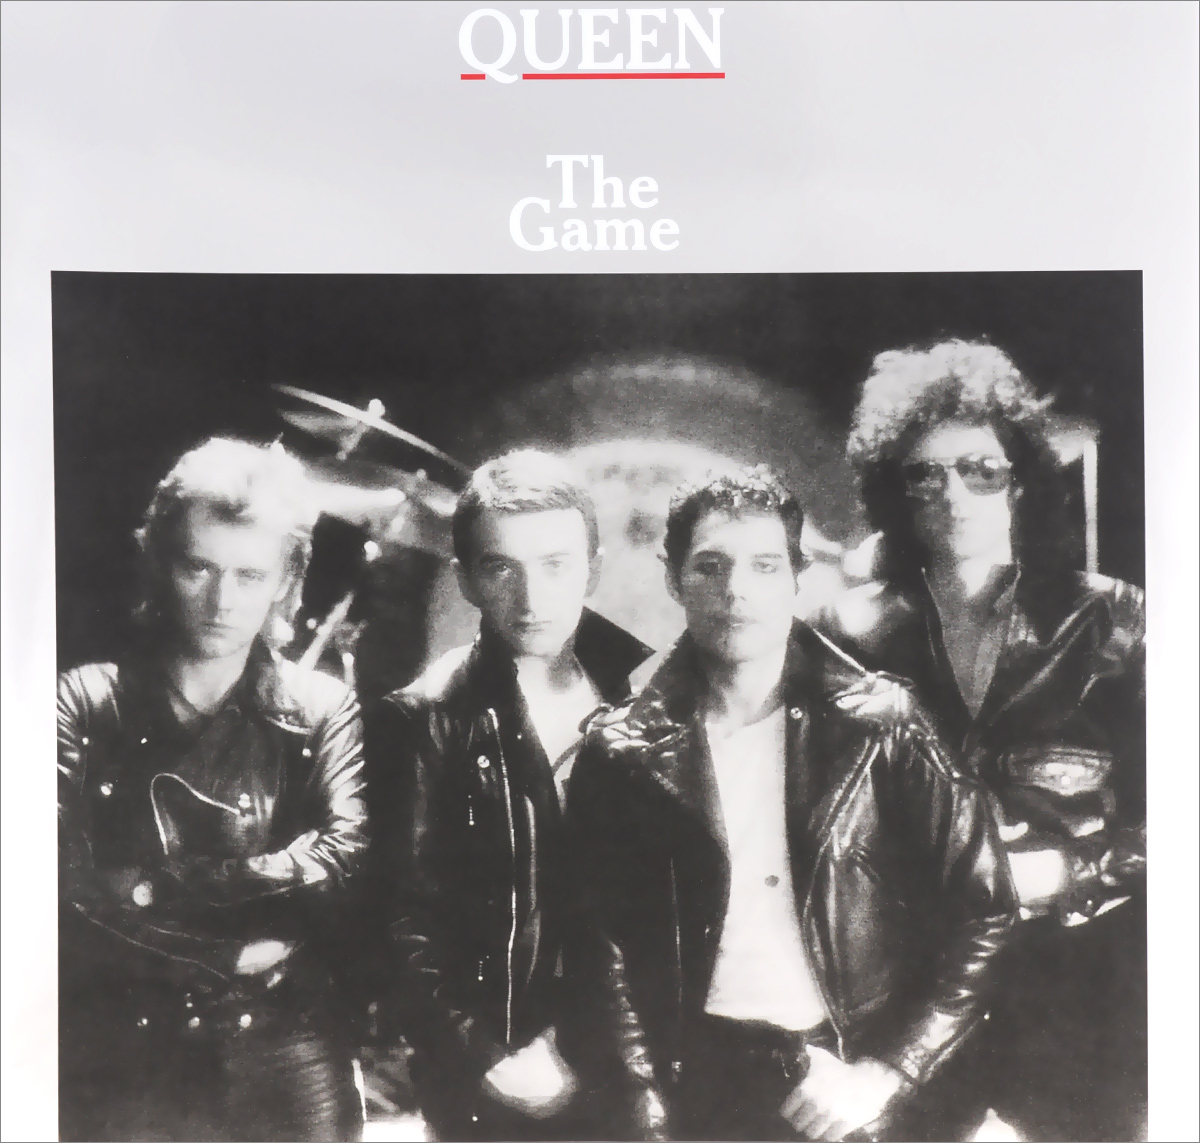 Queen Queen. The Game (LP) queen – the game lp